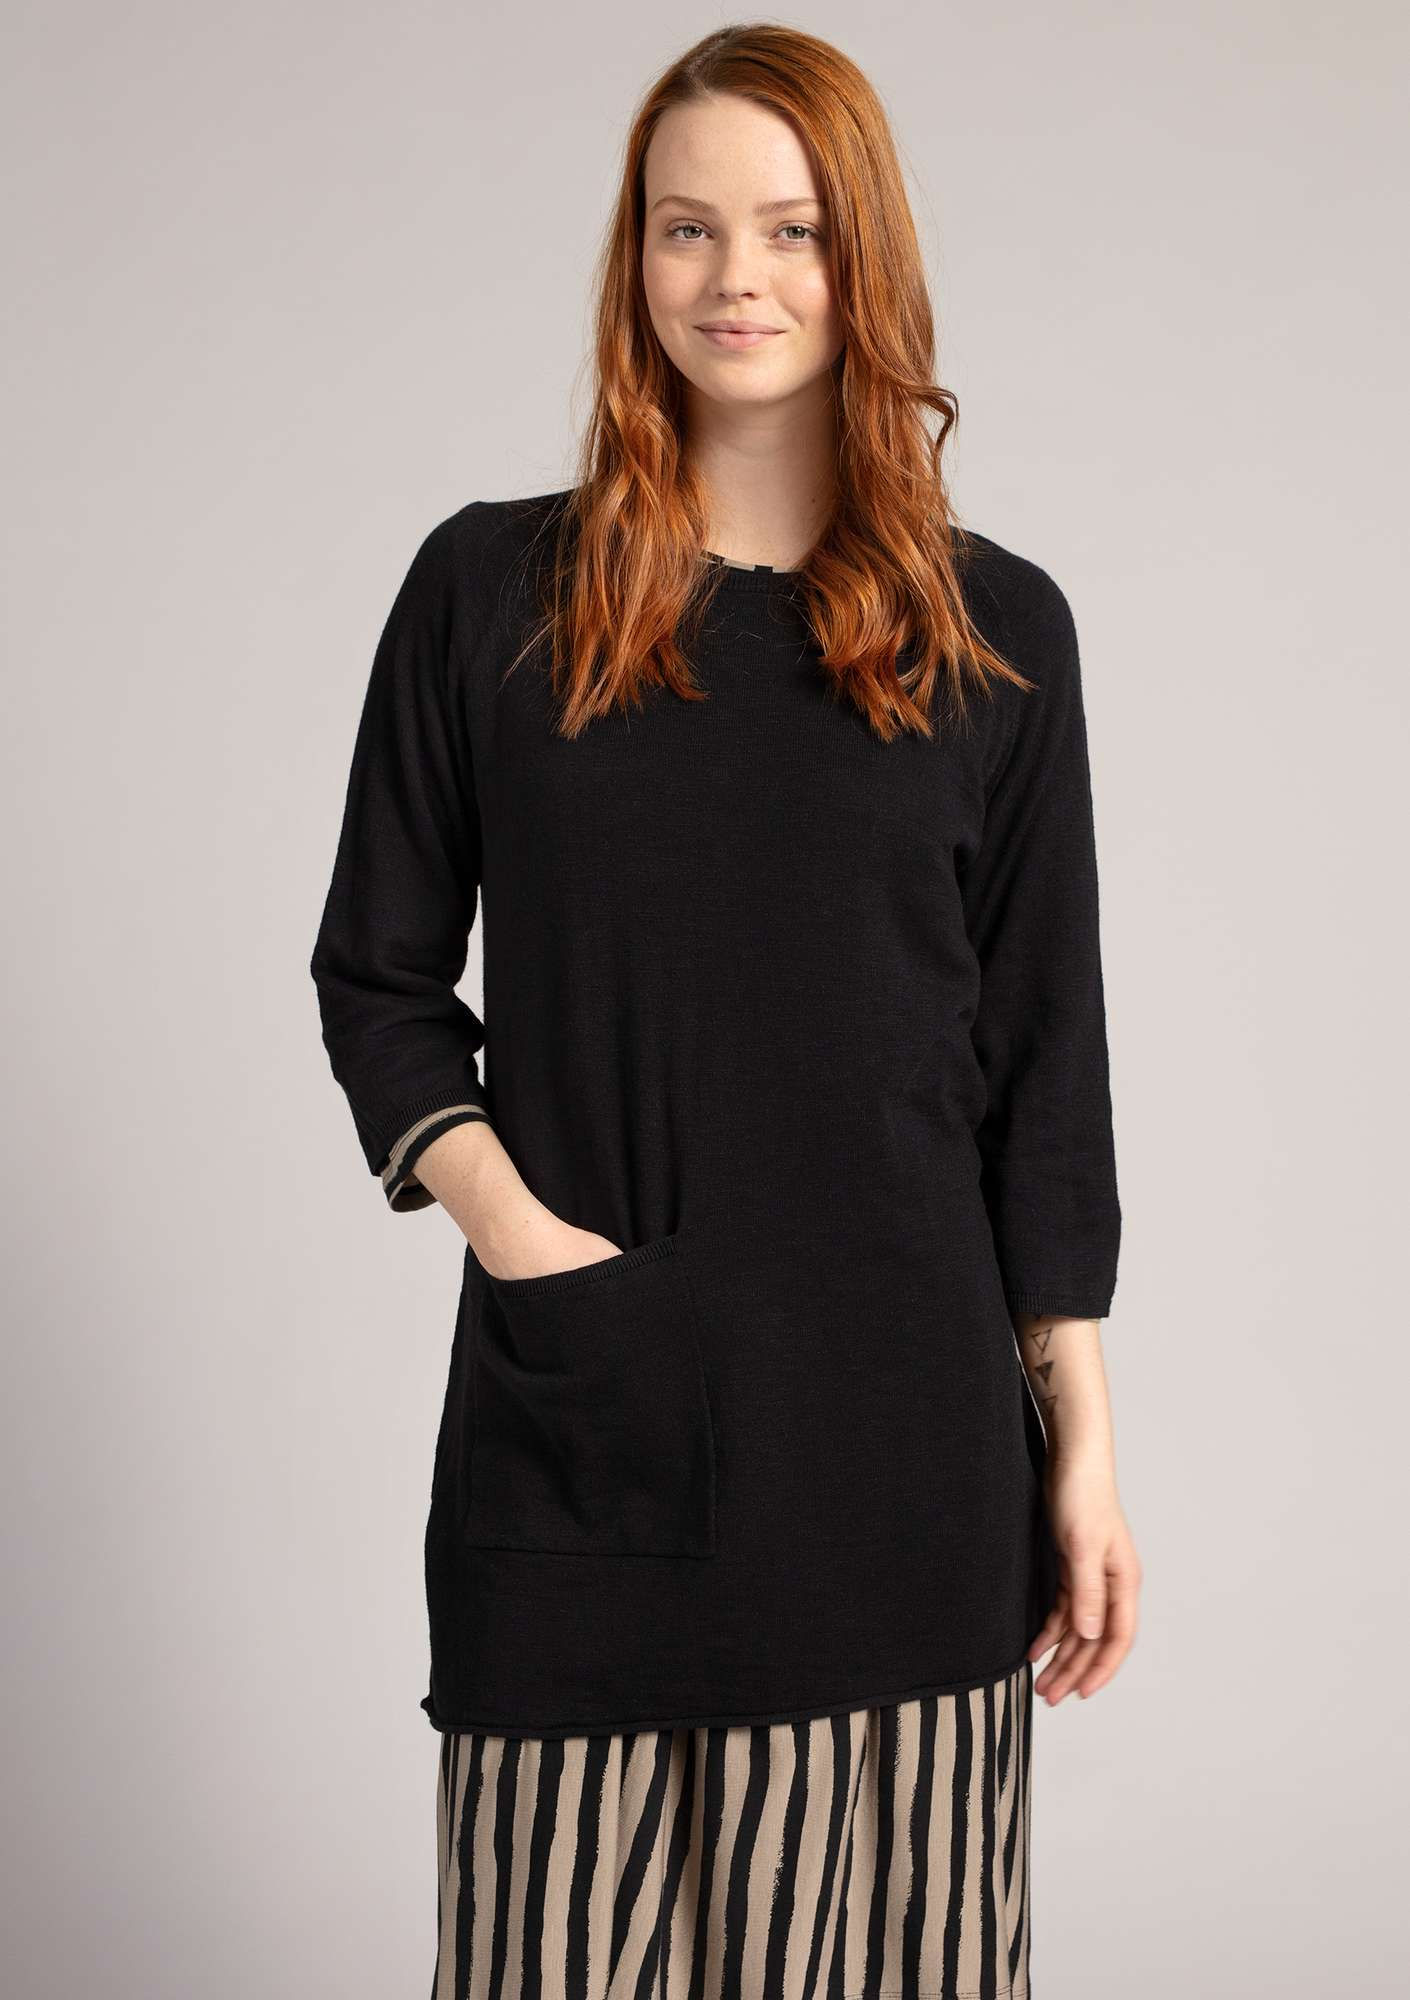 Tunic in organic cotton/linen black